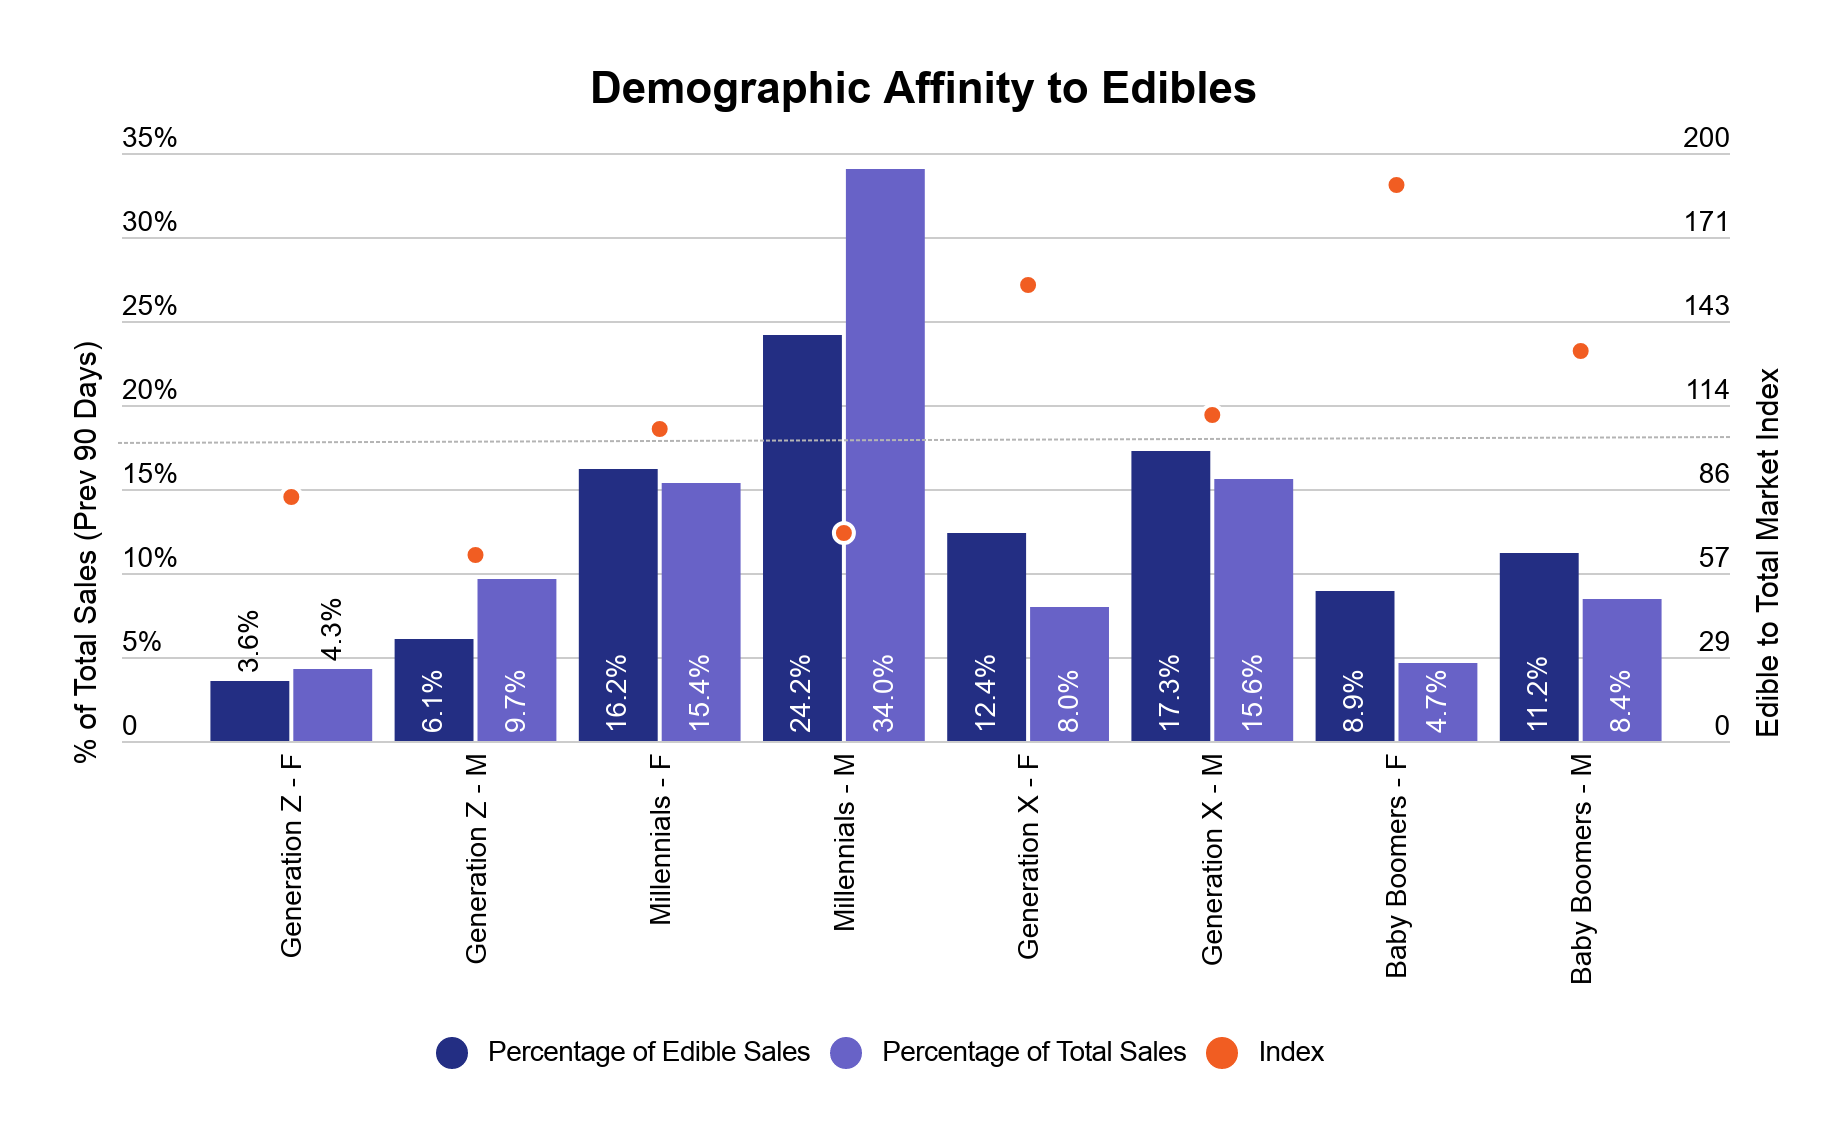 Cannabis edibles data & performance image 7: Consumer preferences of cannabis edibles in the US